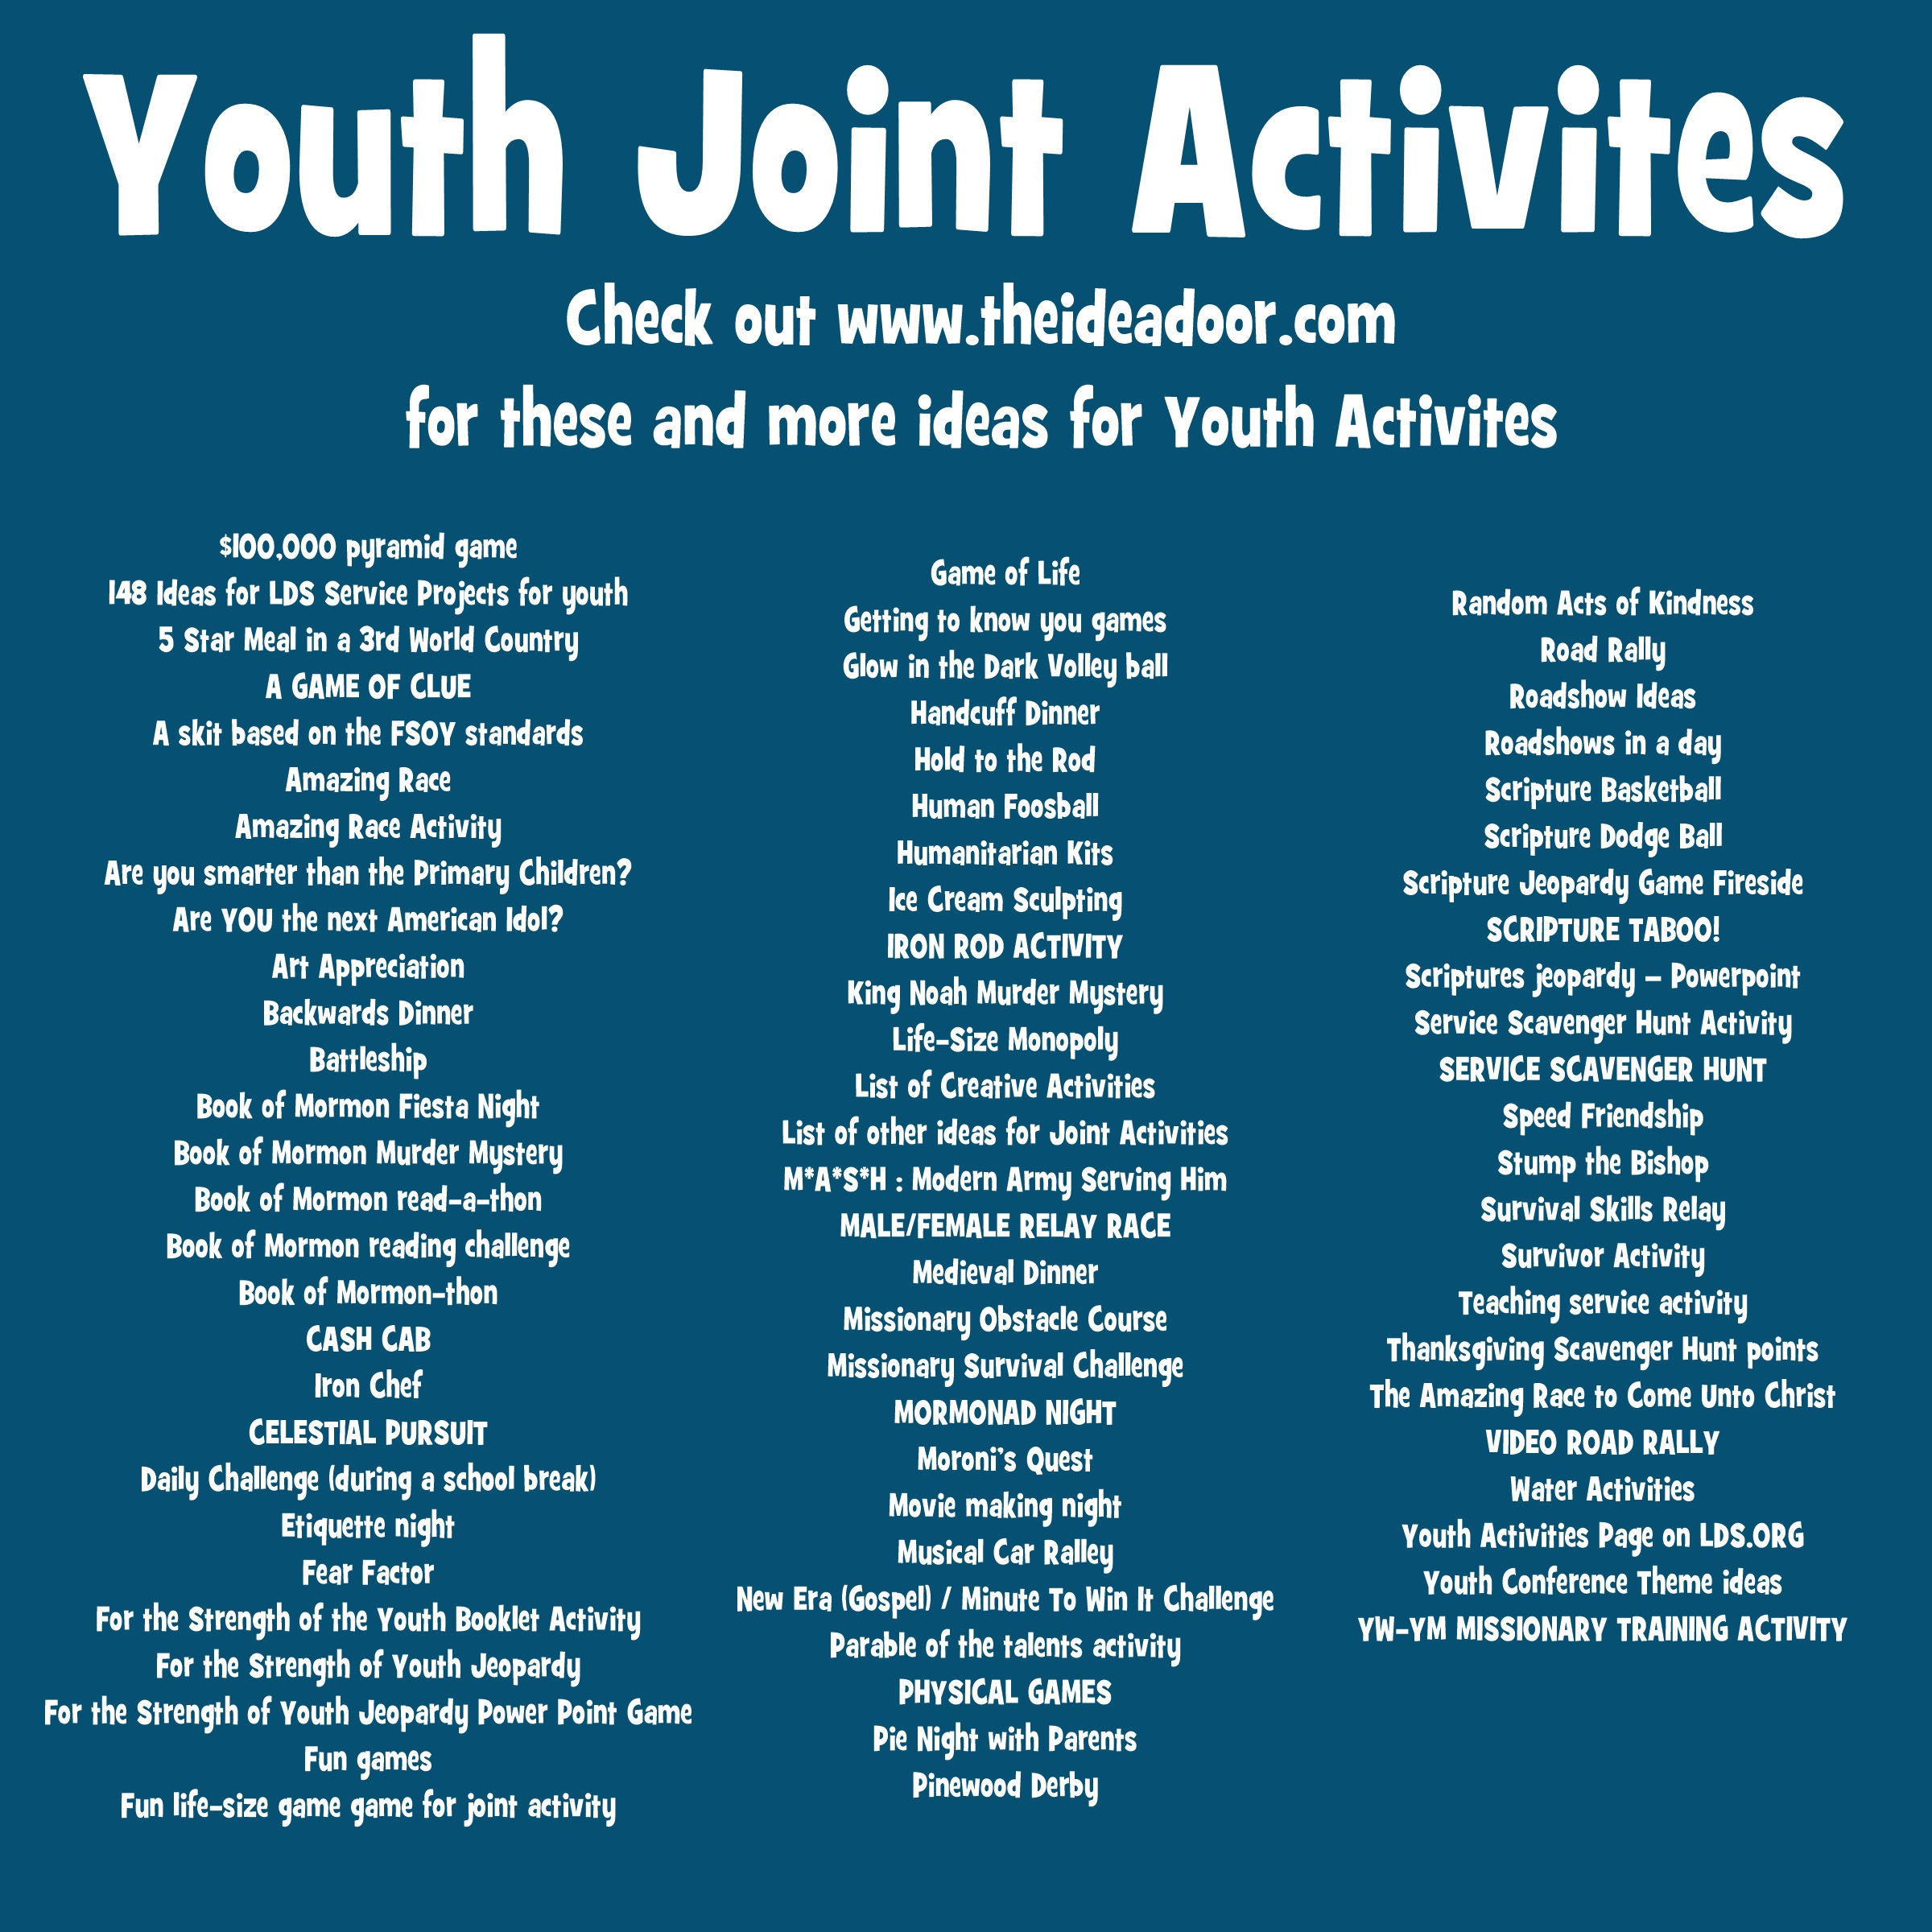 Youth Joint Activities